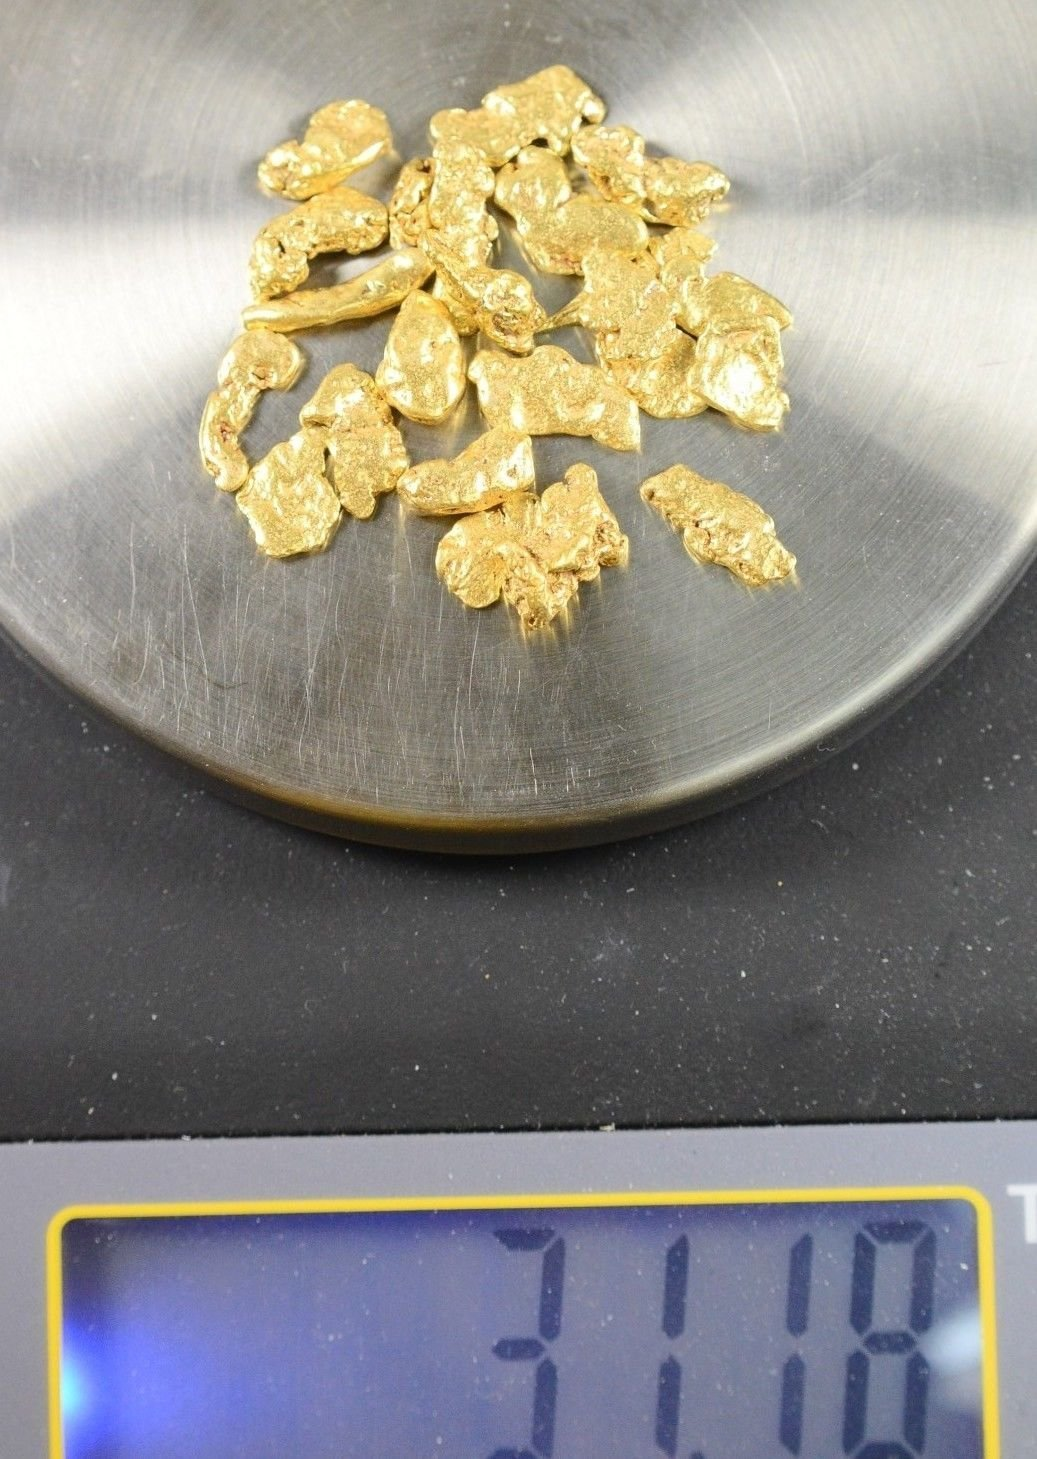 Alaskan-Yukon Bc Natural Gold Nugget #4 Mesh 2 Troy Ounce 62.2 Gram Alaskan Flake Nuggets